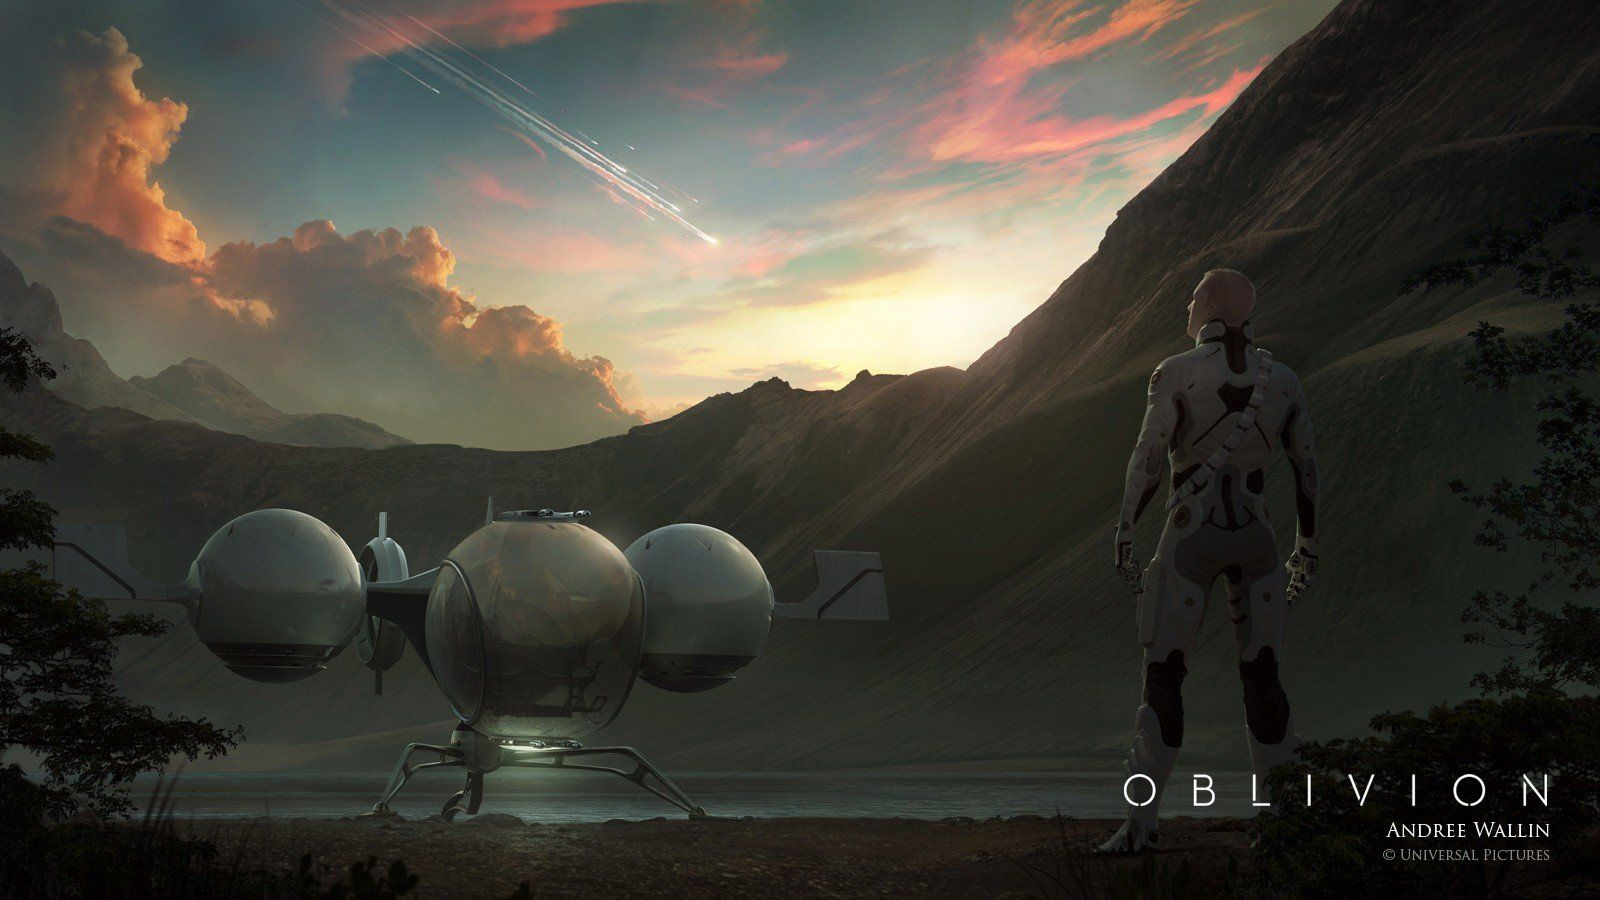 scifi themes oblivion movie wallpaper in hd resolution with tom | 3d